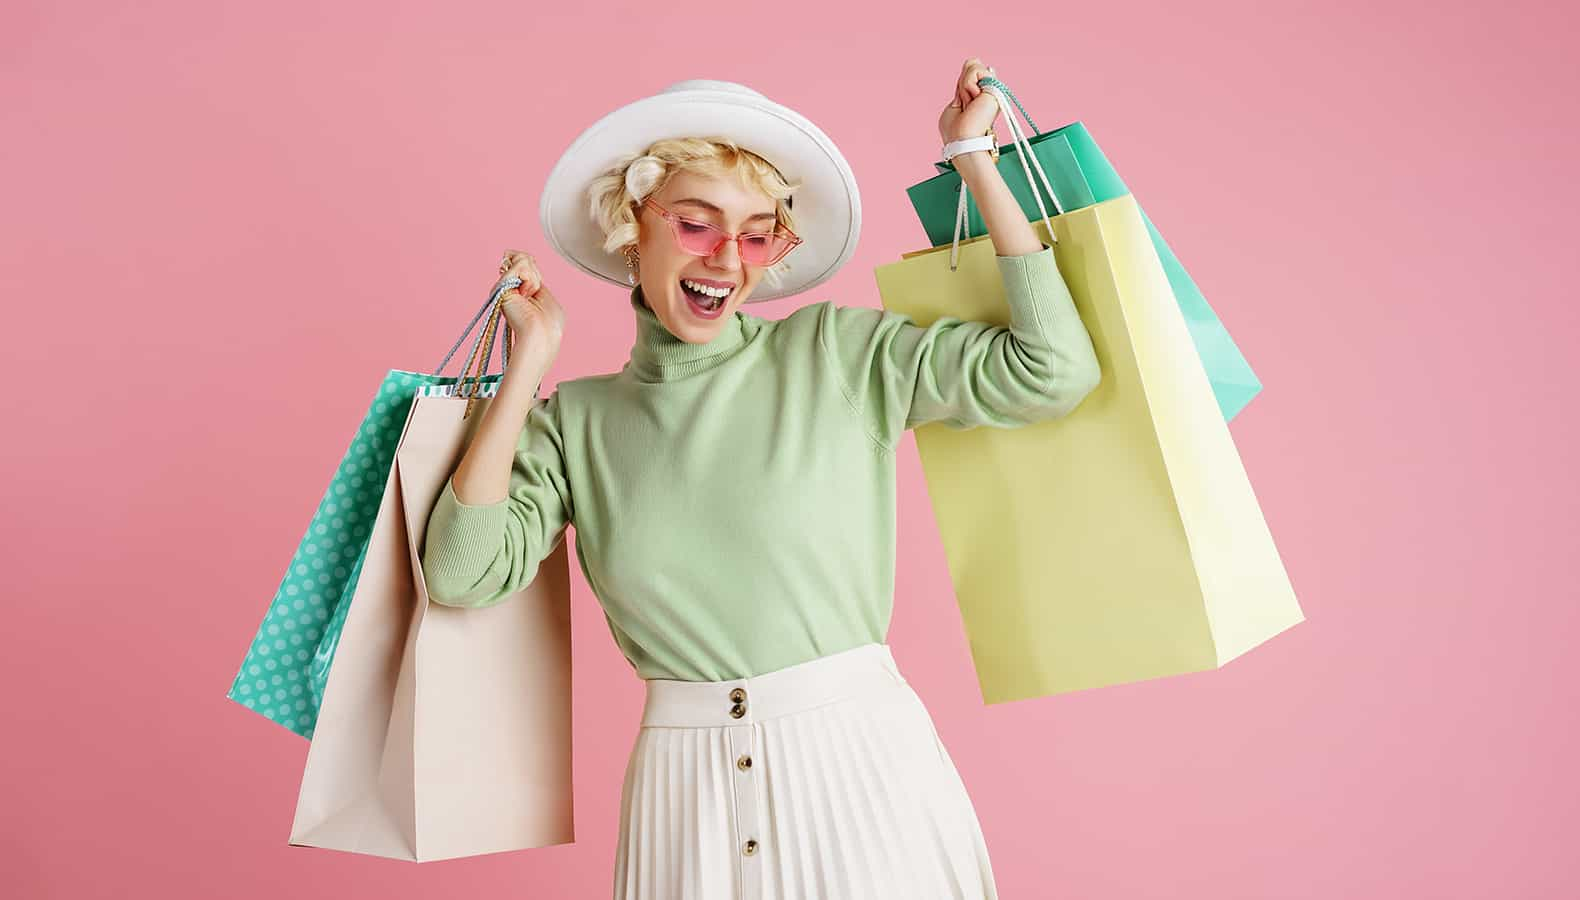 Into the Vogue: How Much Did Fashion Sales Grow in 2021?